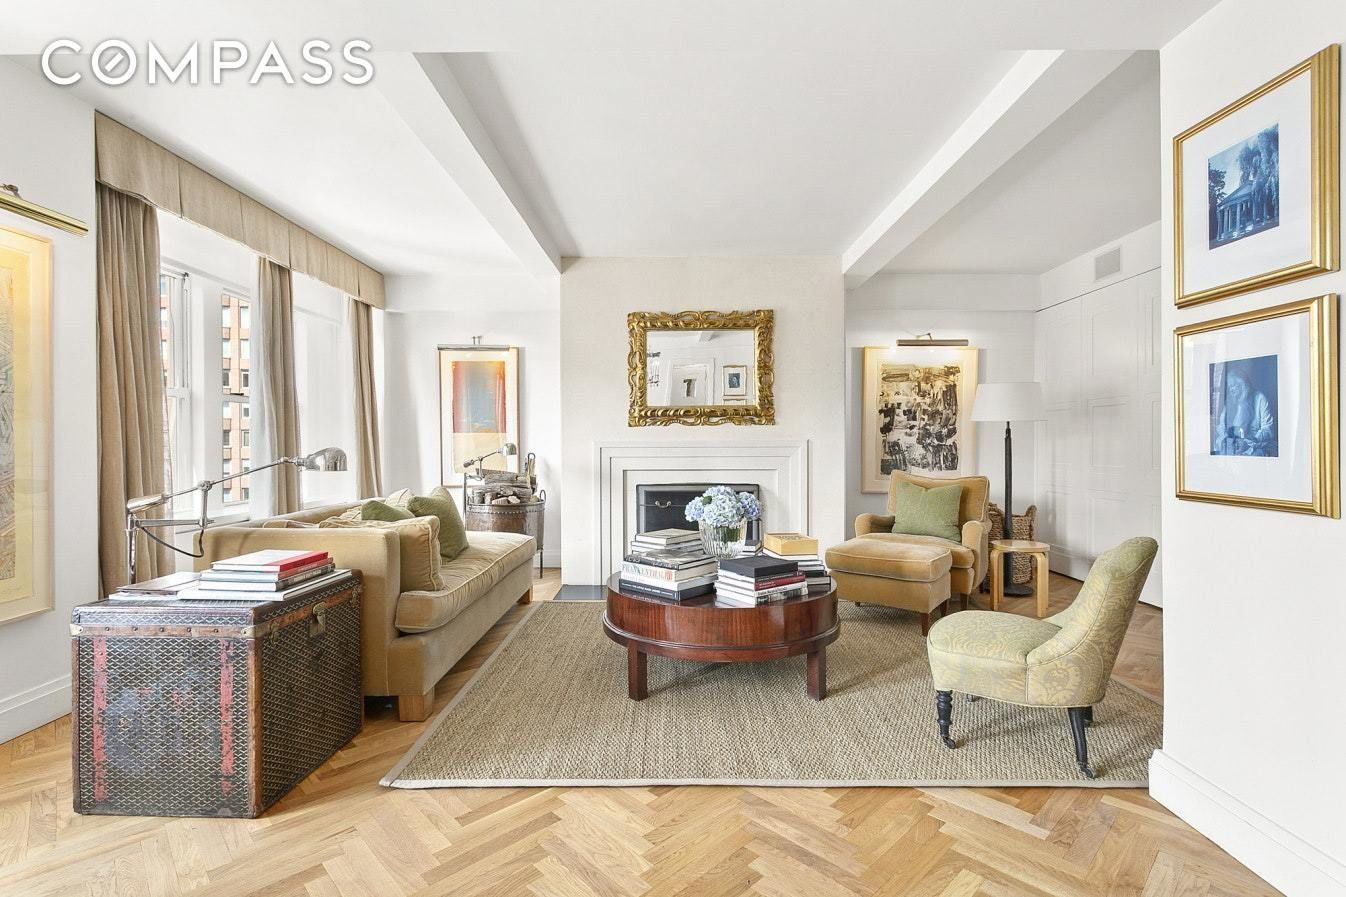 Apartment for sale at 205 East 78th Street, Apt 14-J